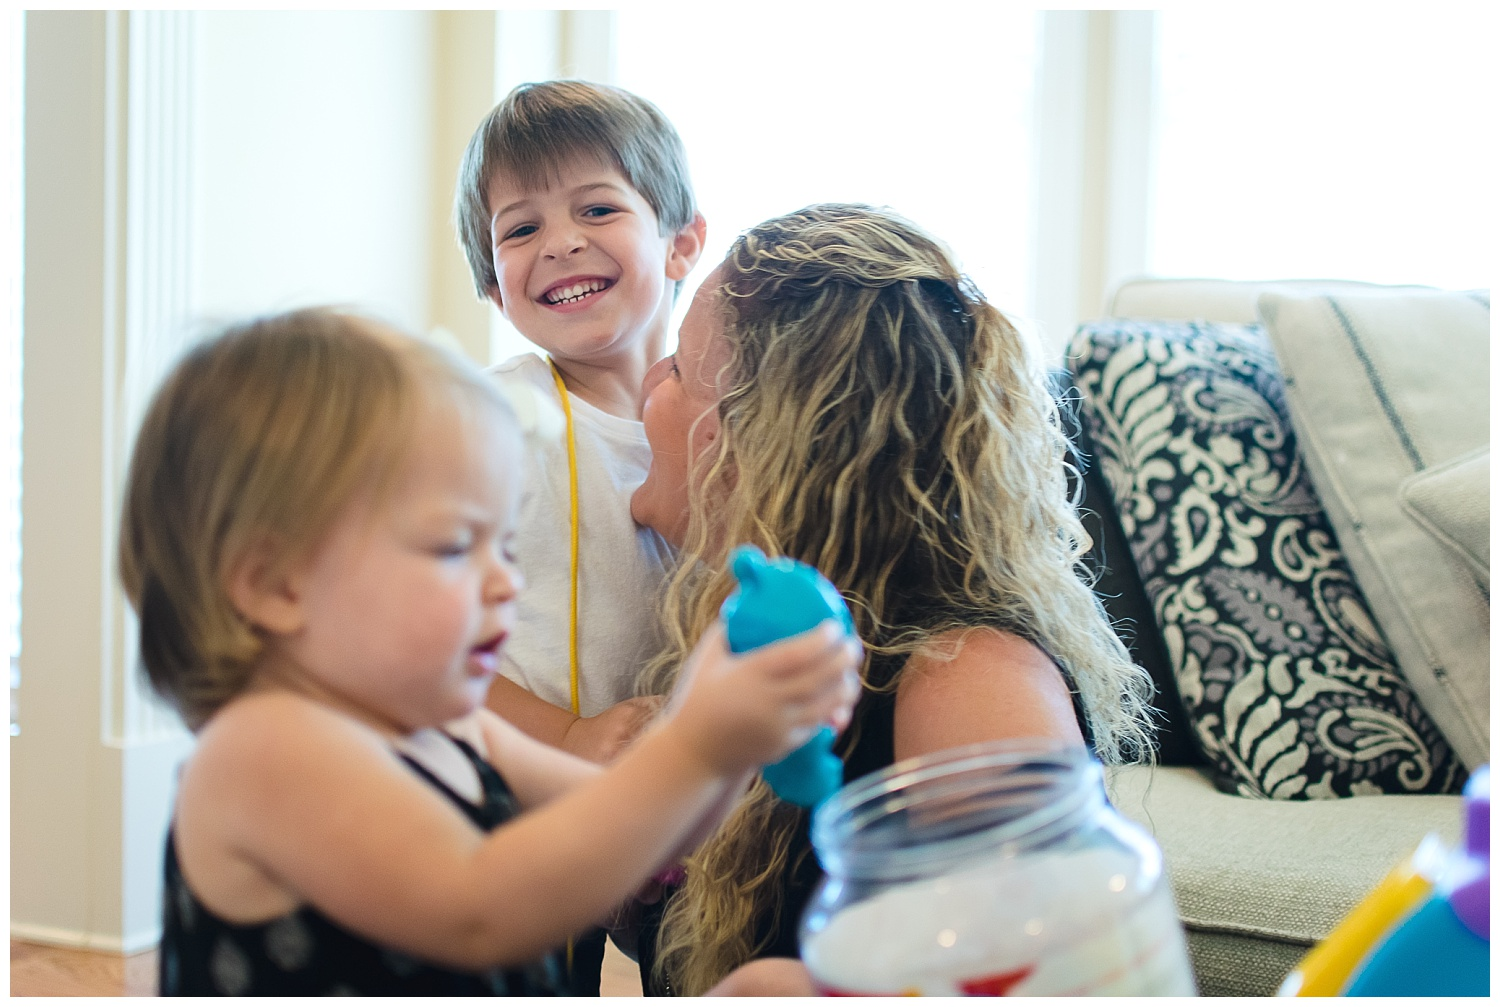 this is an image of a young girl playing with her toys in the foreground and mom playing with another young child in the background in their home